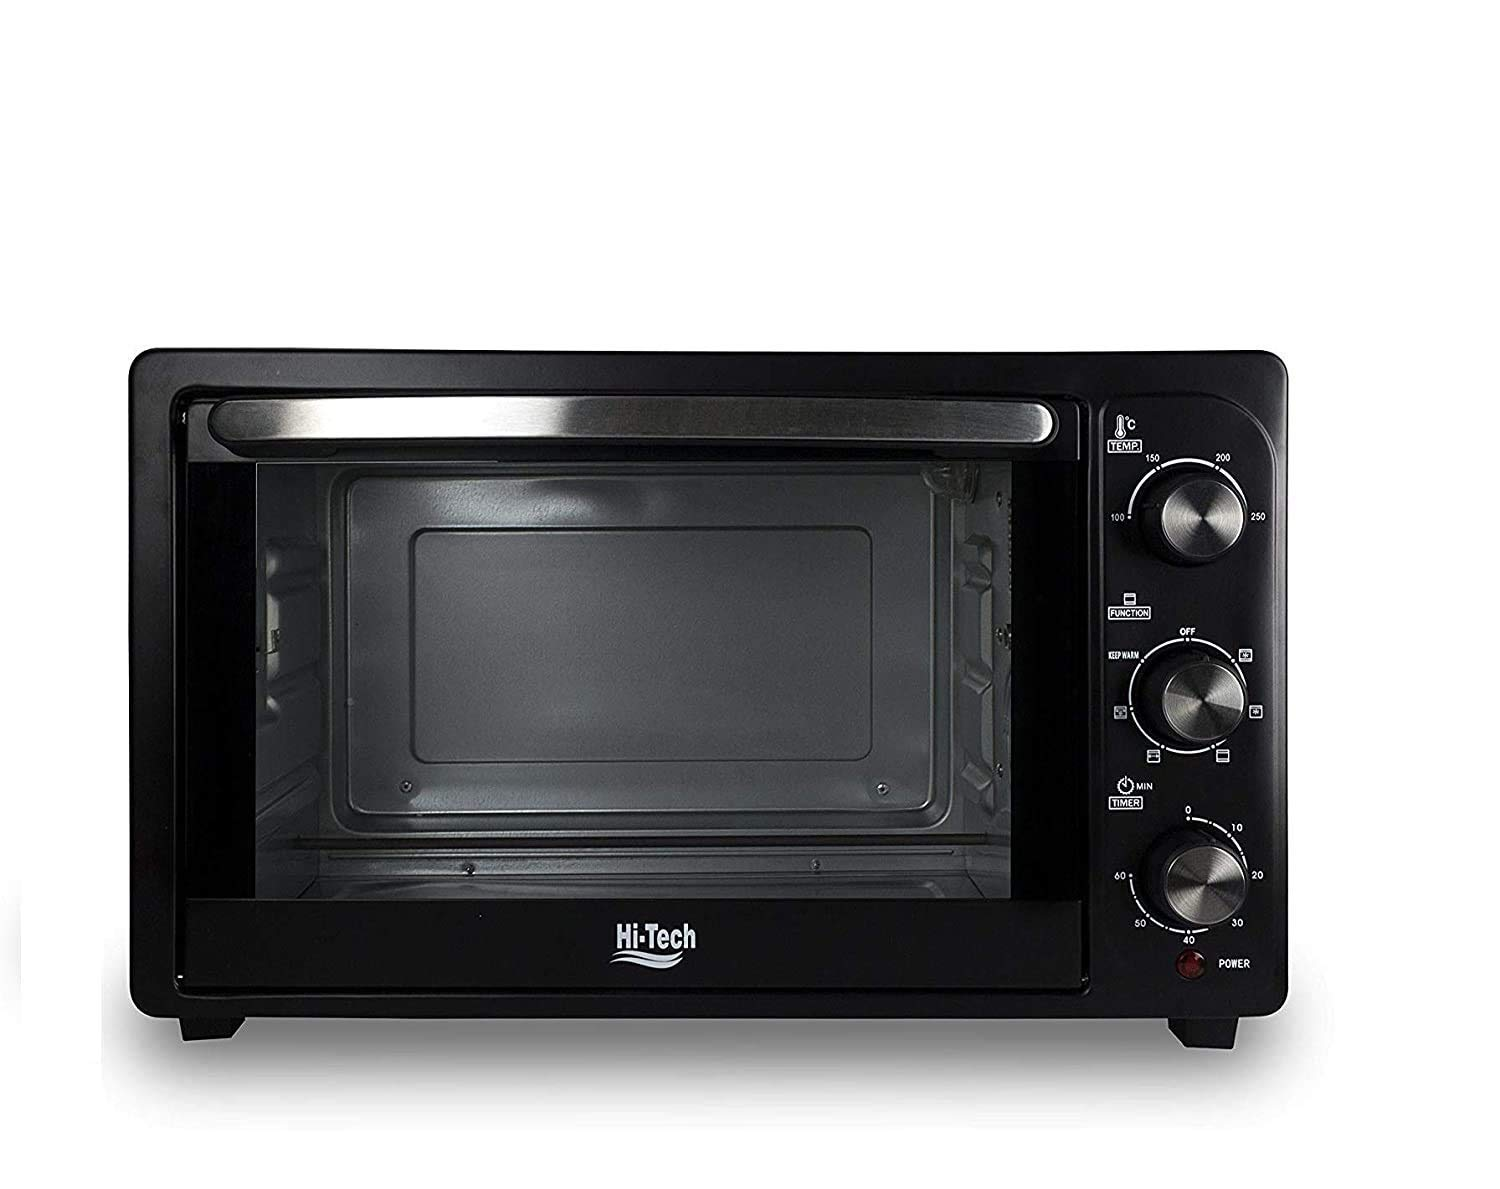 HI-TECH MICROWAVE OVEN UNDER 7000